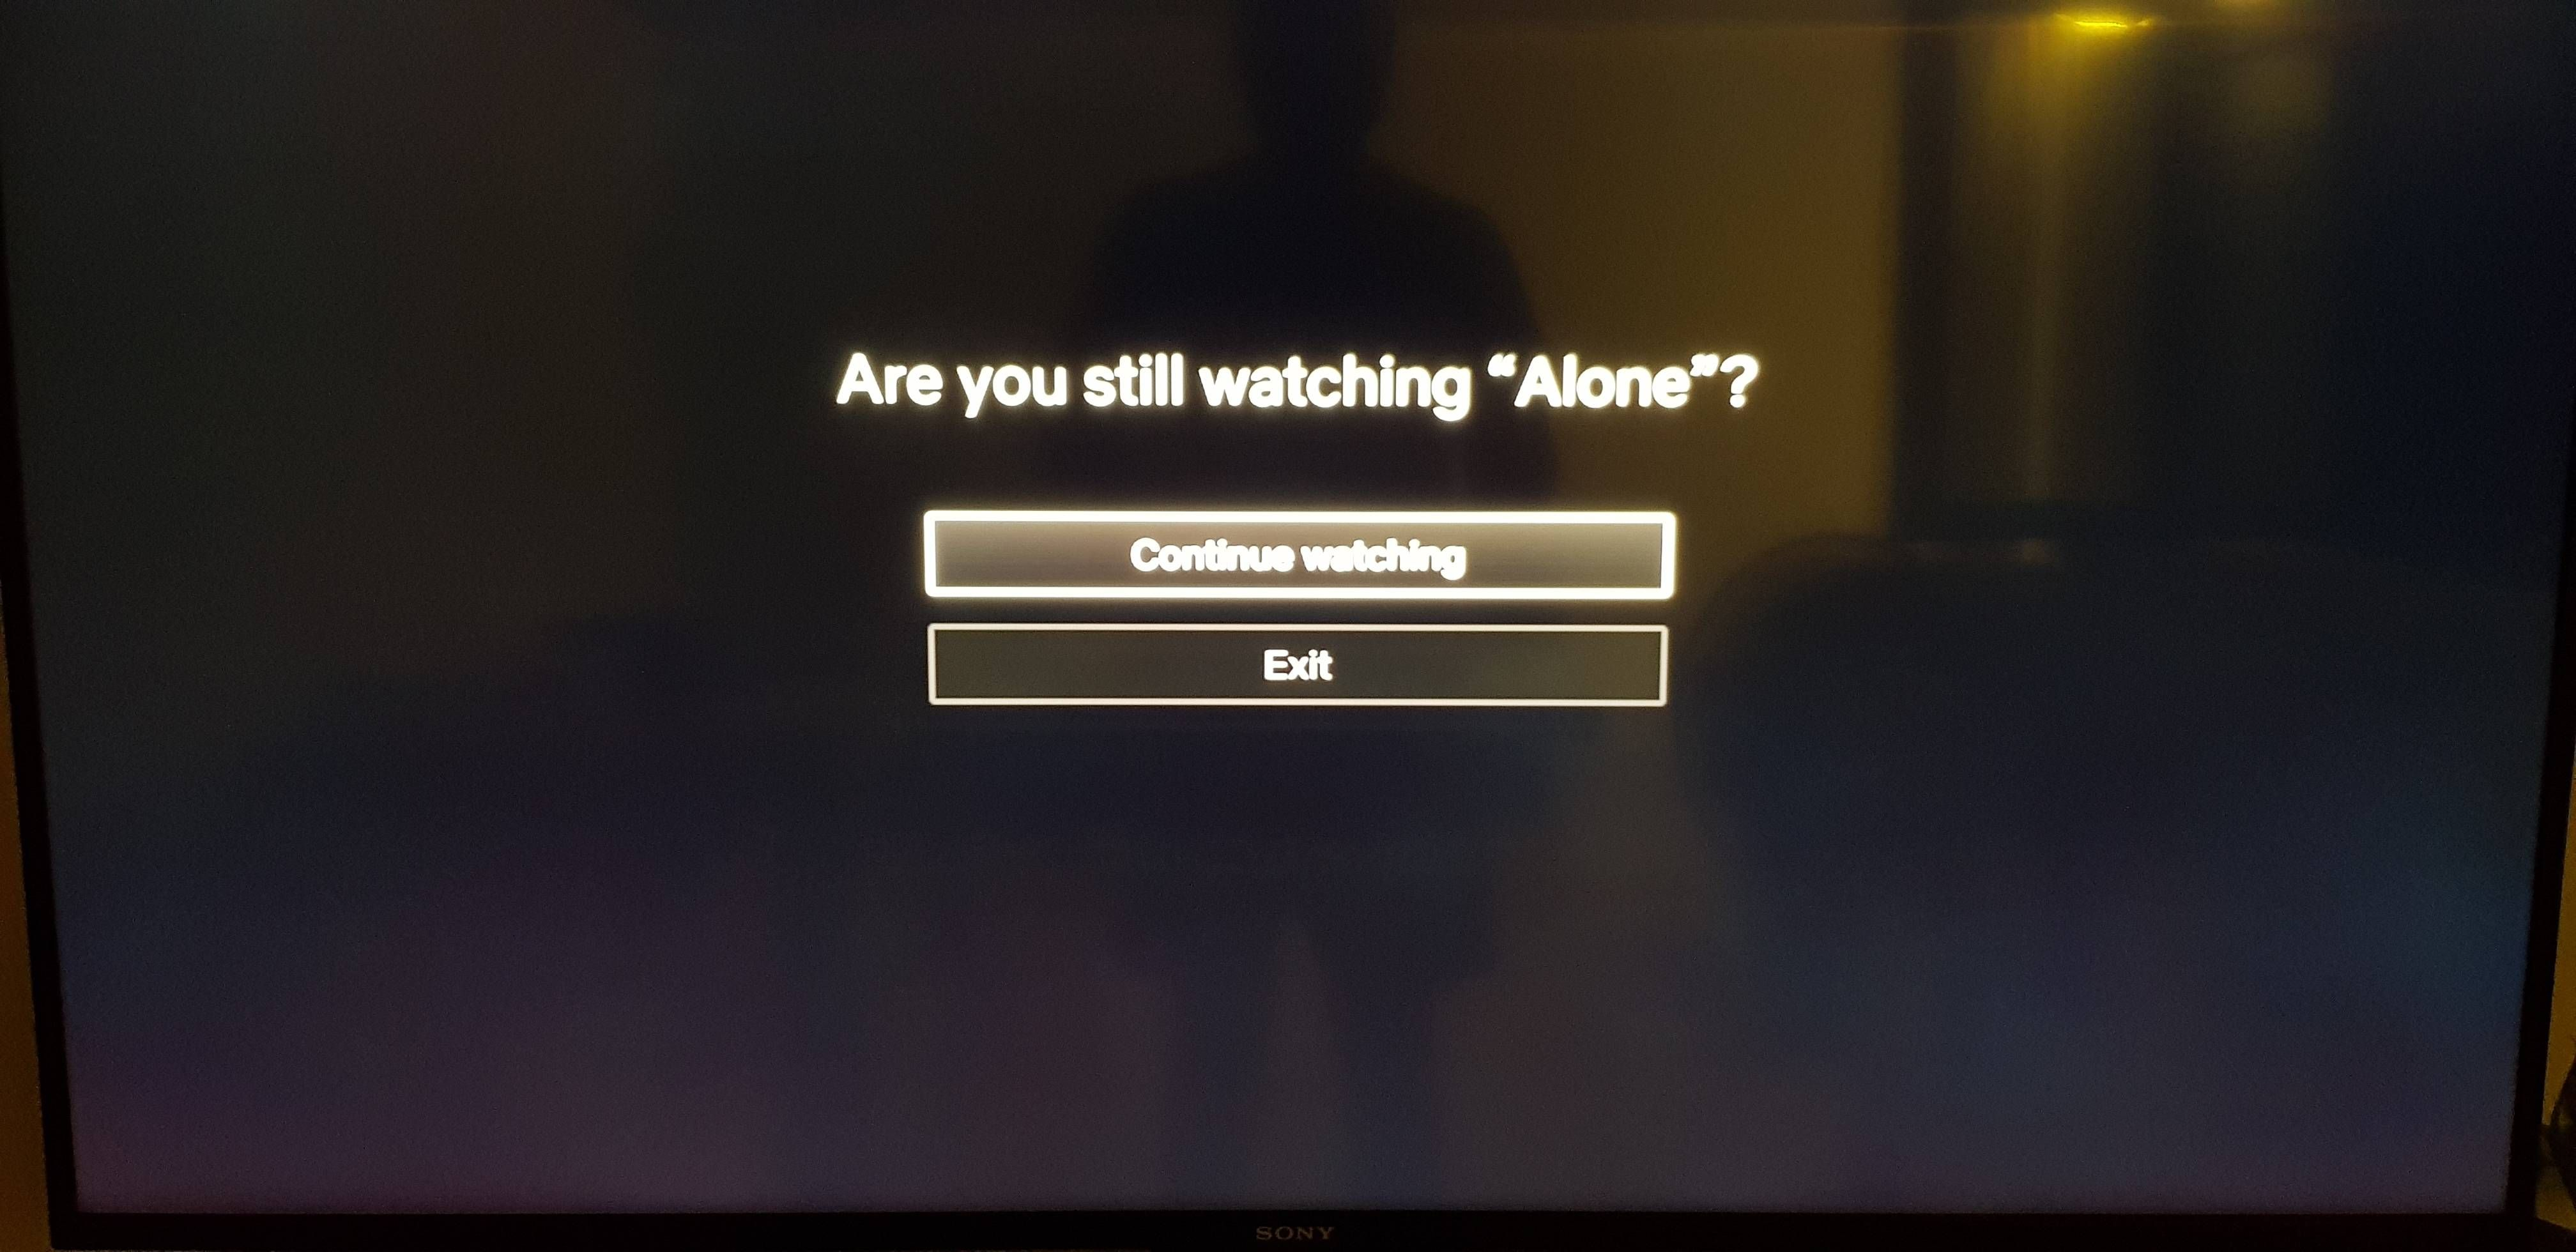 Thanks for rubbing that in, Netflix